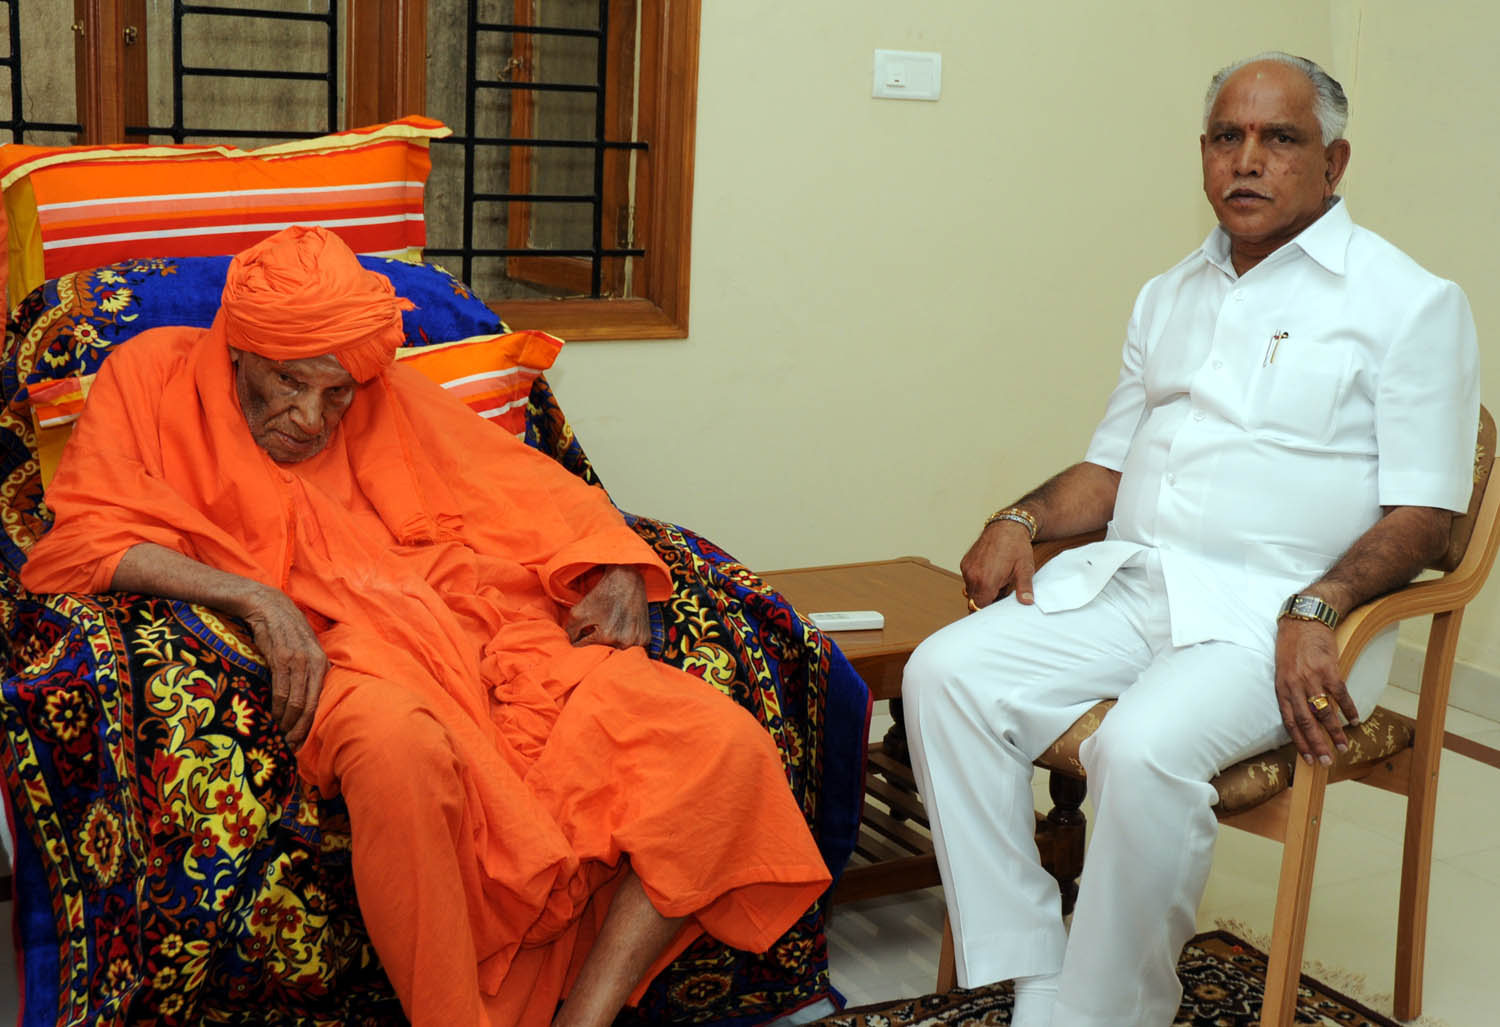 CM BSY discussed with Dr Shivakumara Swamiji of Siddaganga mutt bangalore